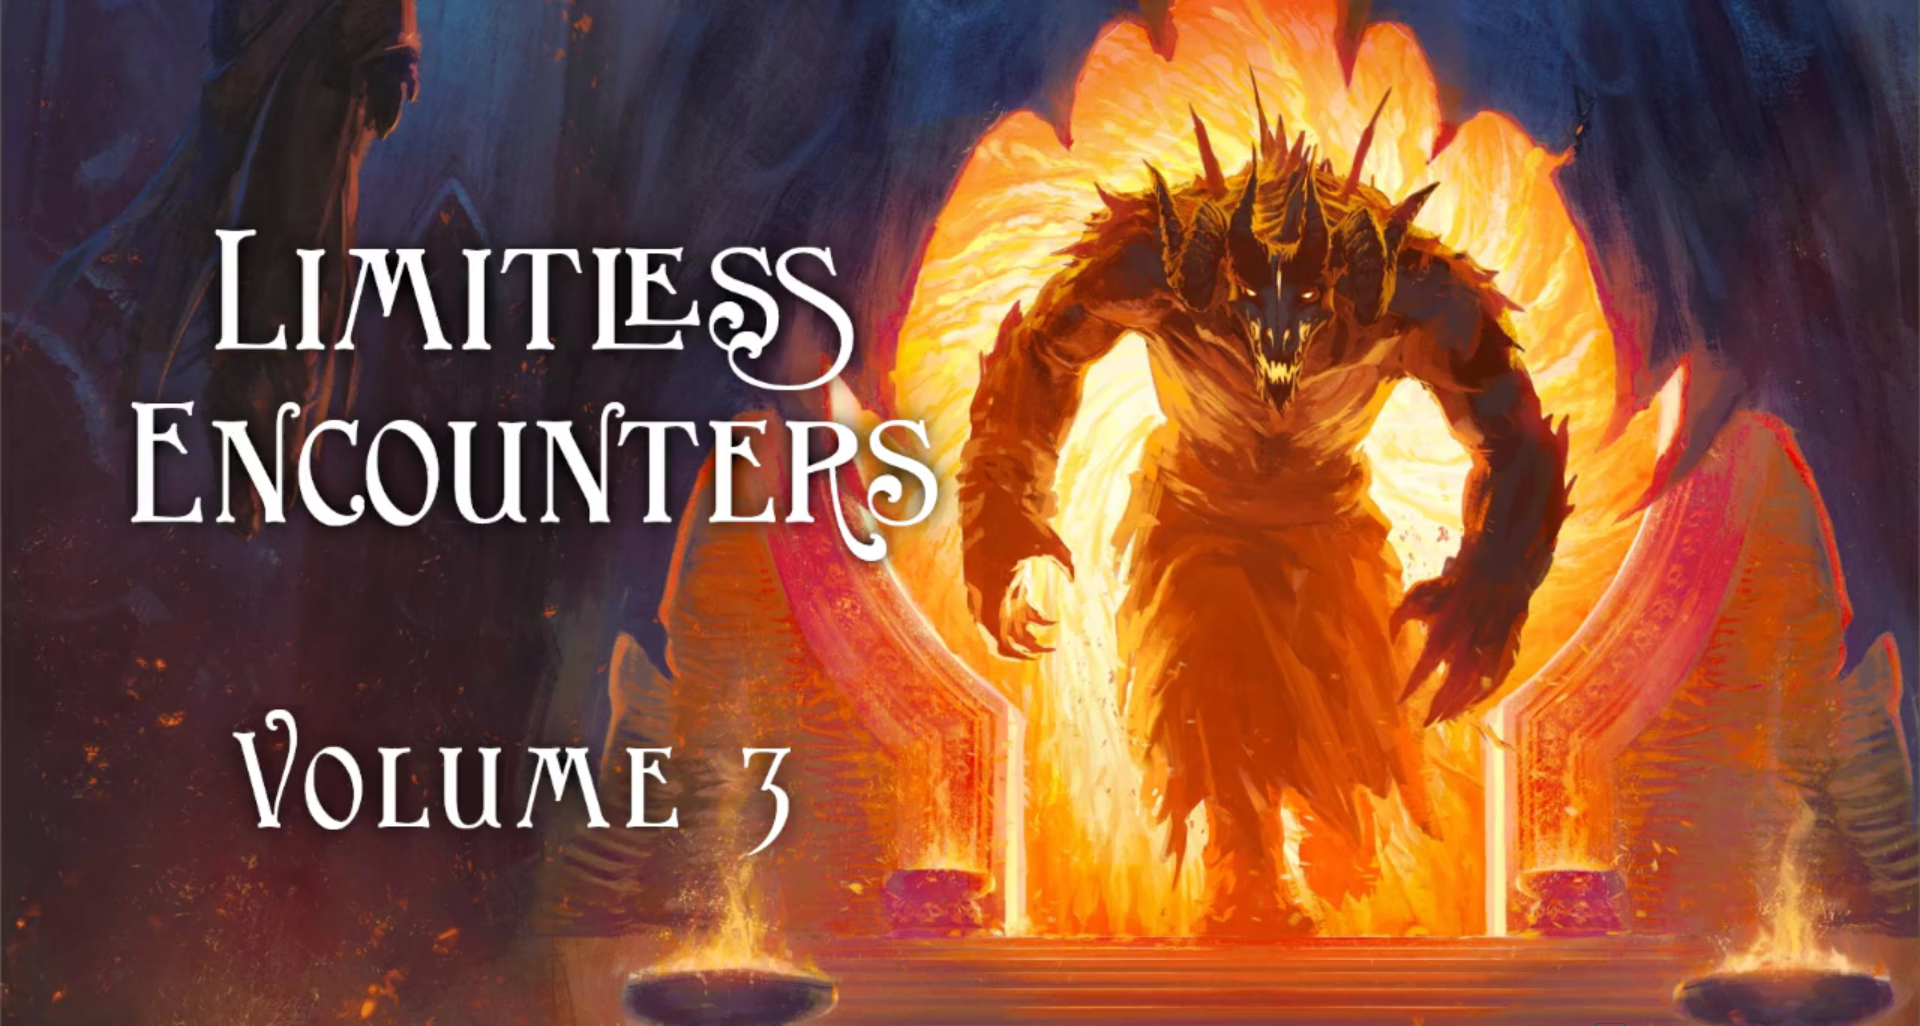 Limitless Encounters Vol 3.PNG